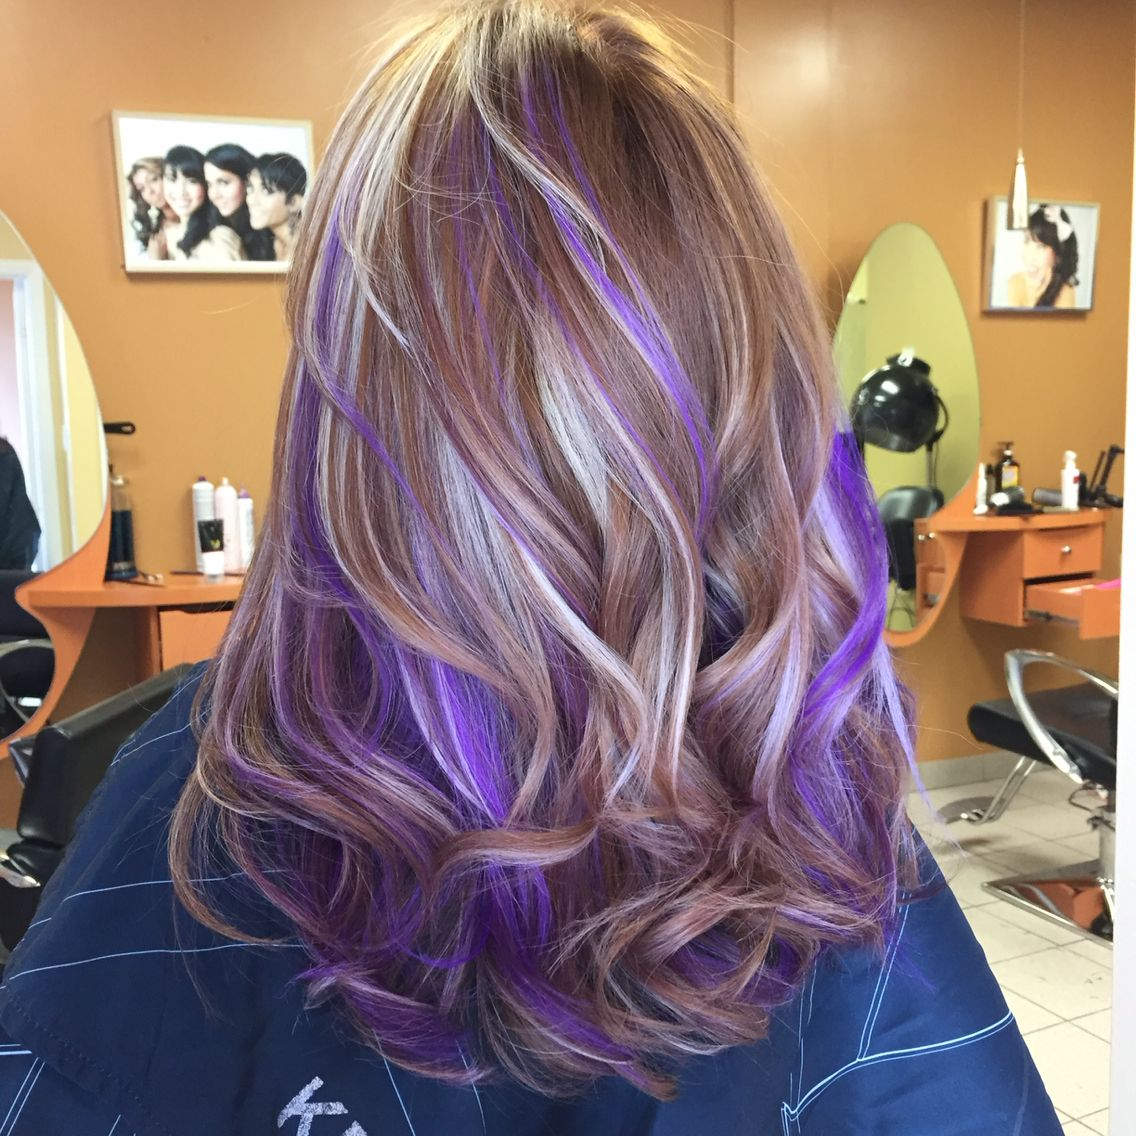 Pravana Purple Highlights Purple Hair Highlights Purple Hair Streaks Hair Highlights